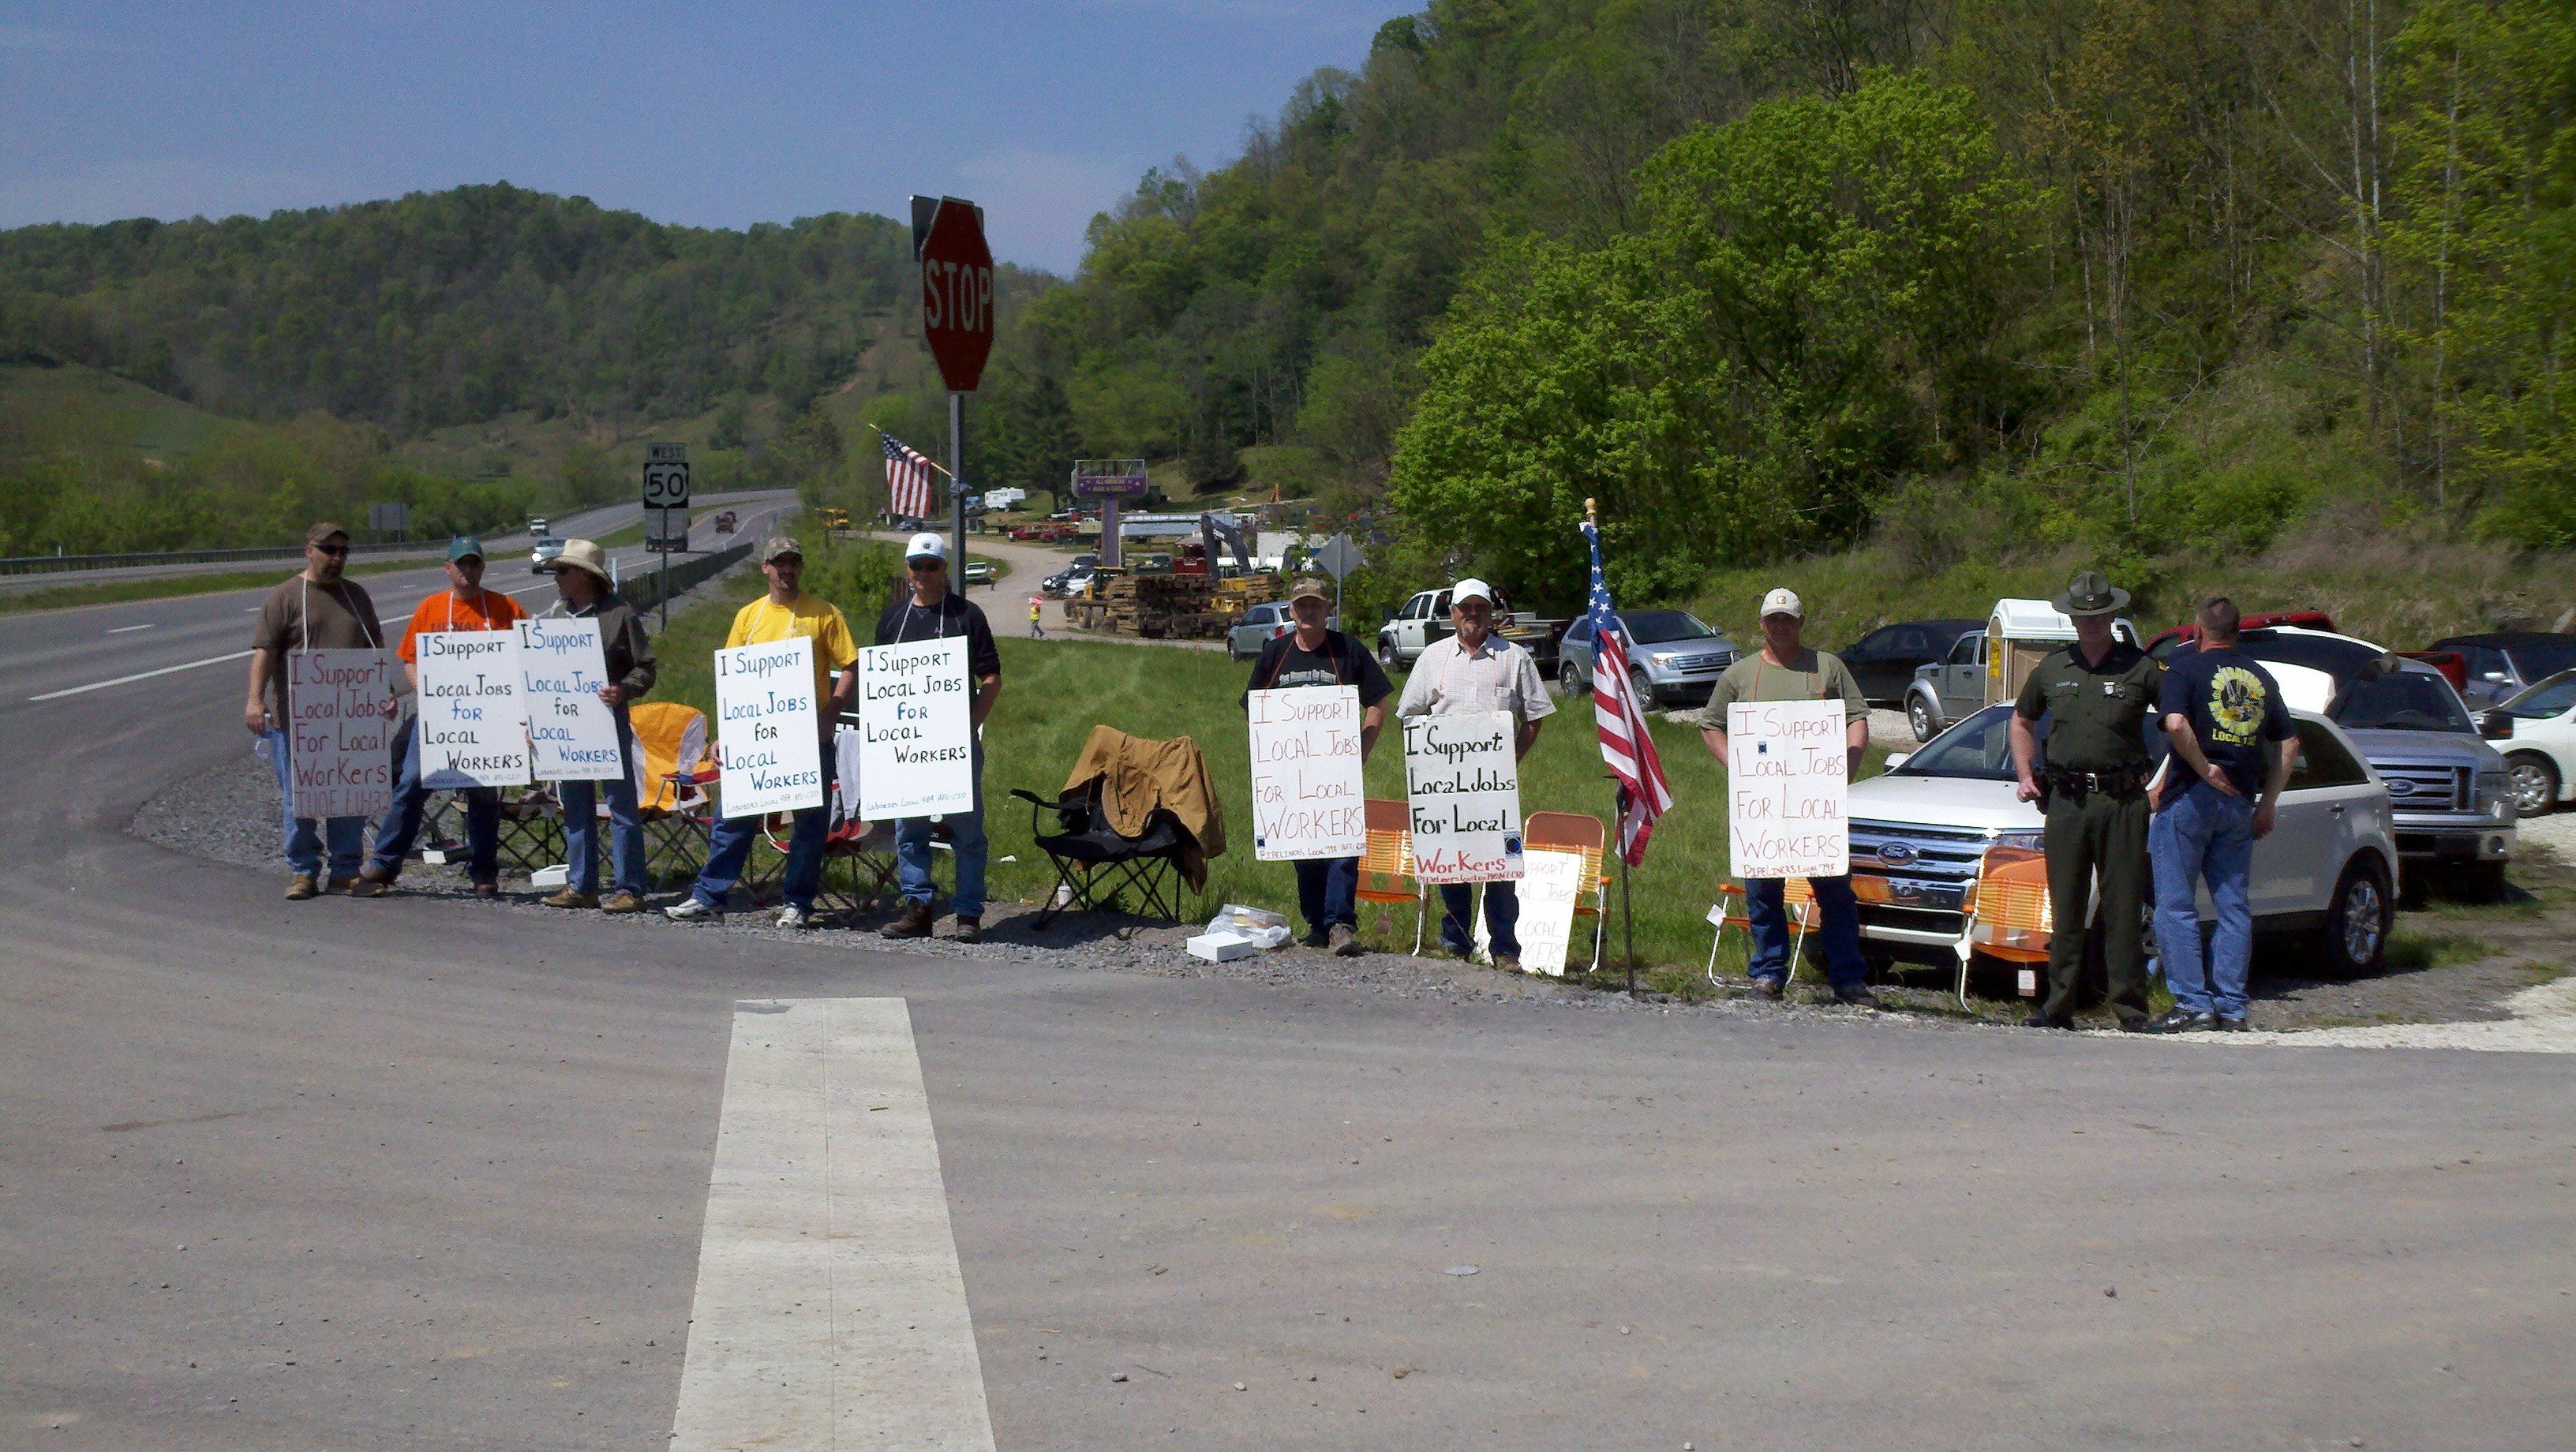 wv workers protest in doddridge county against out of state work workers lined the intersection of route 50 and sherwood forest road in doddridge county monday morning to protest against out of state workers